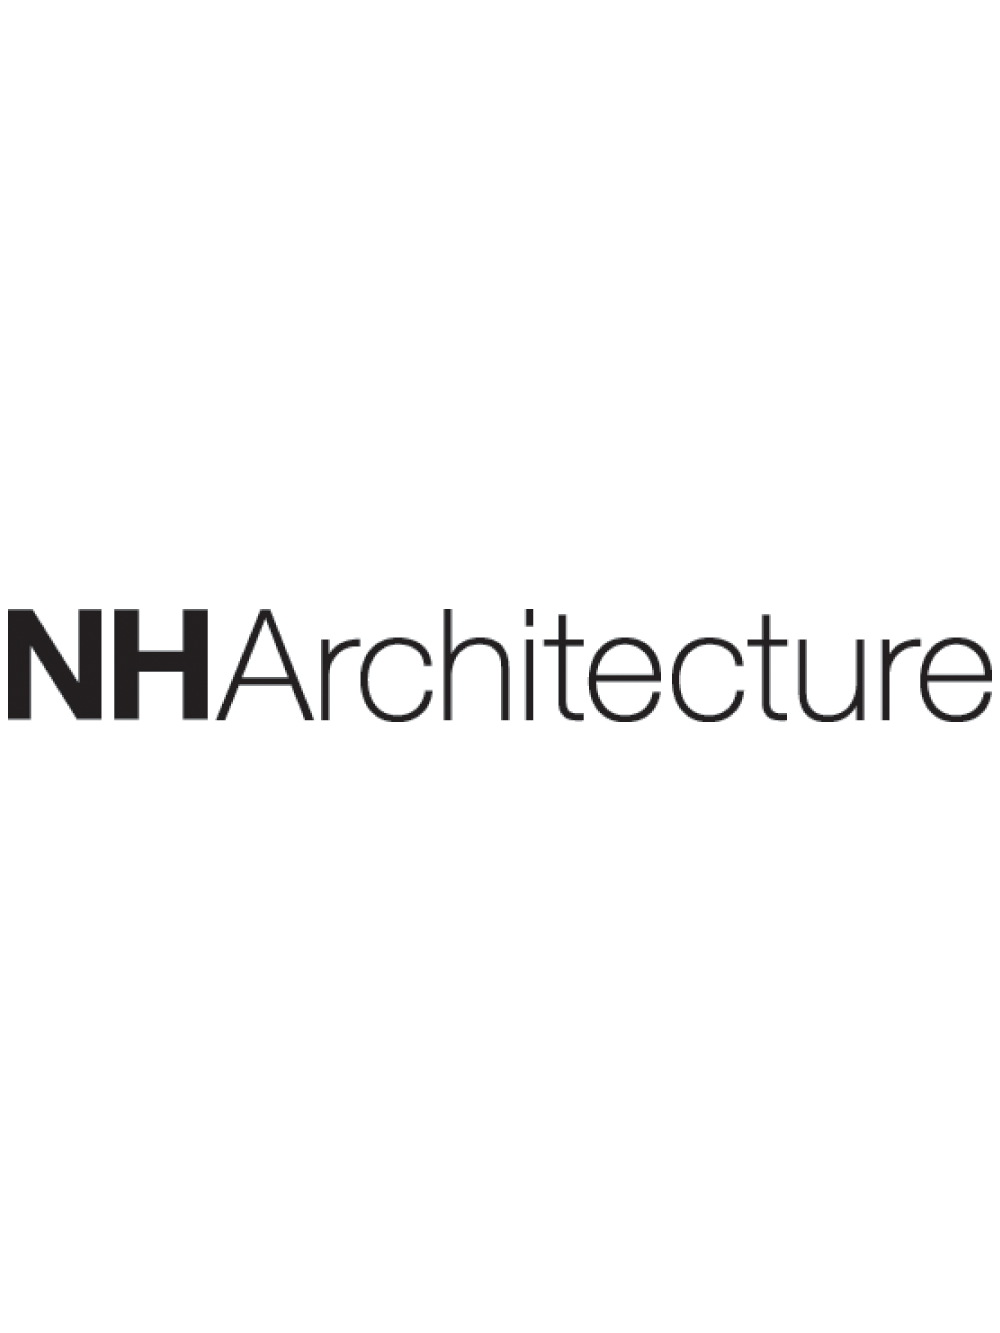 NH-architecture_1000x1333.png